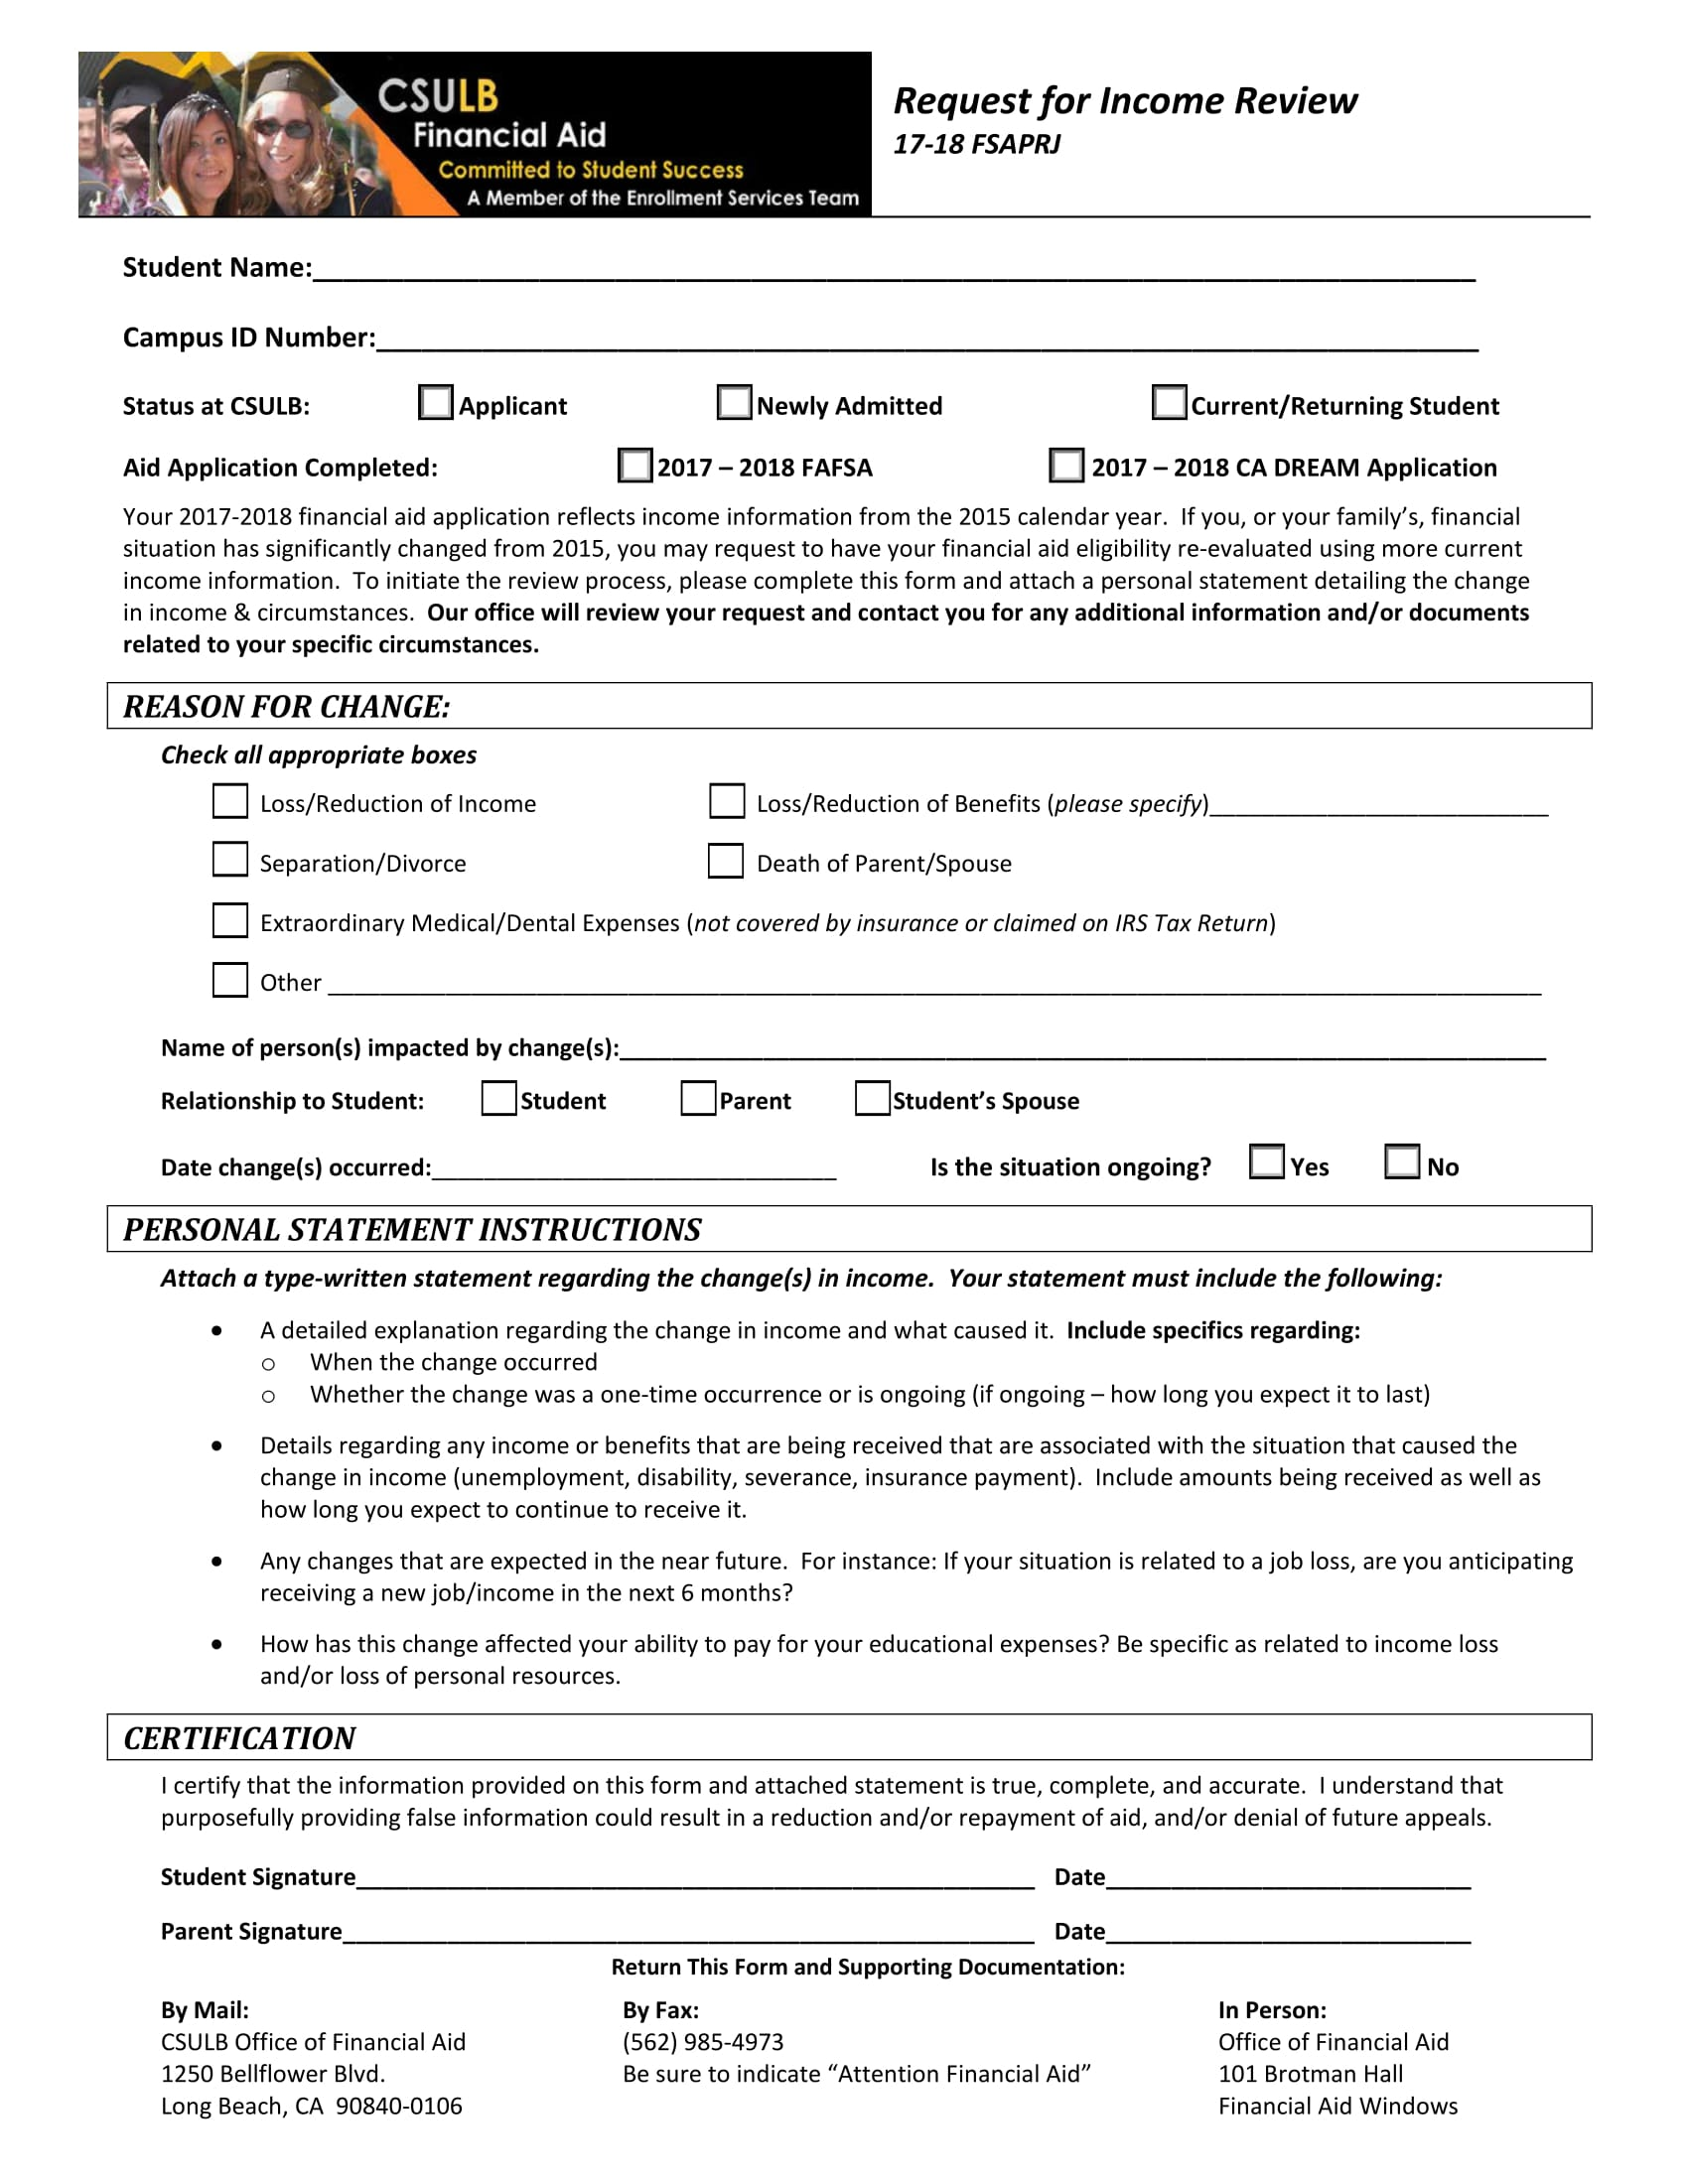 request for income review form 1